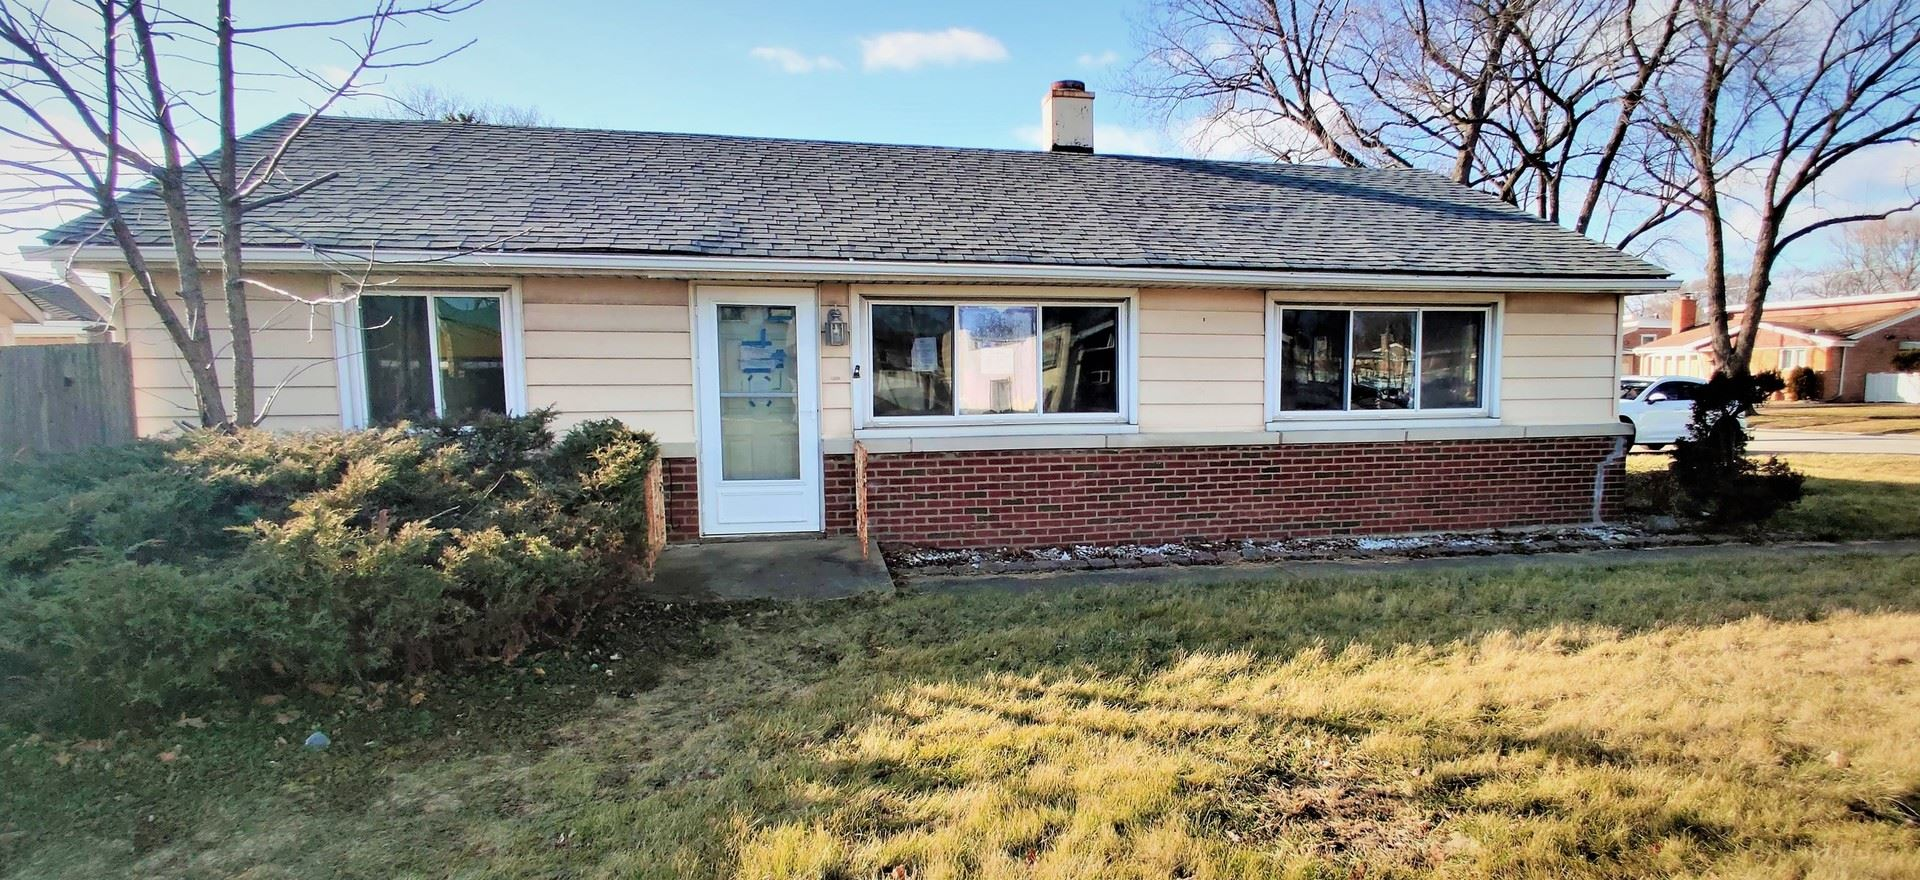 4001 W 106th Place, Oak Lawn, IL 60453 - MLS#: 10691495